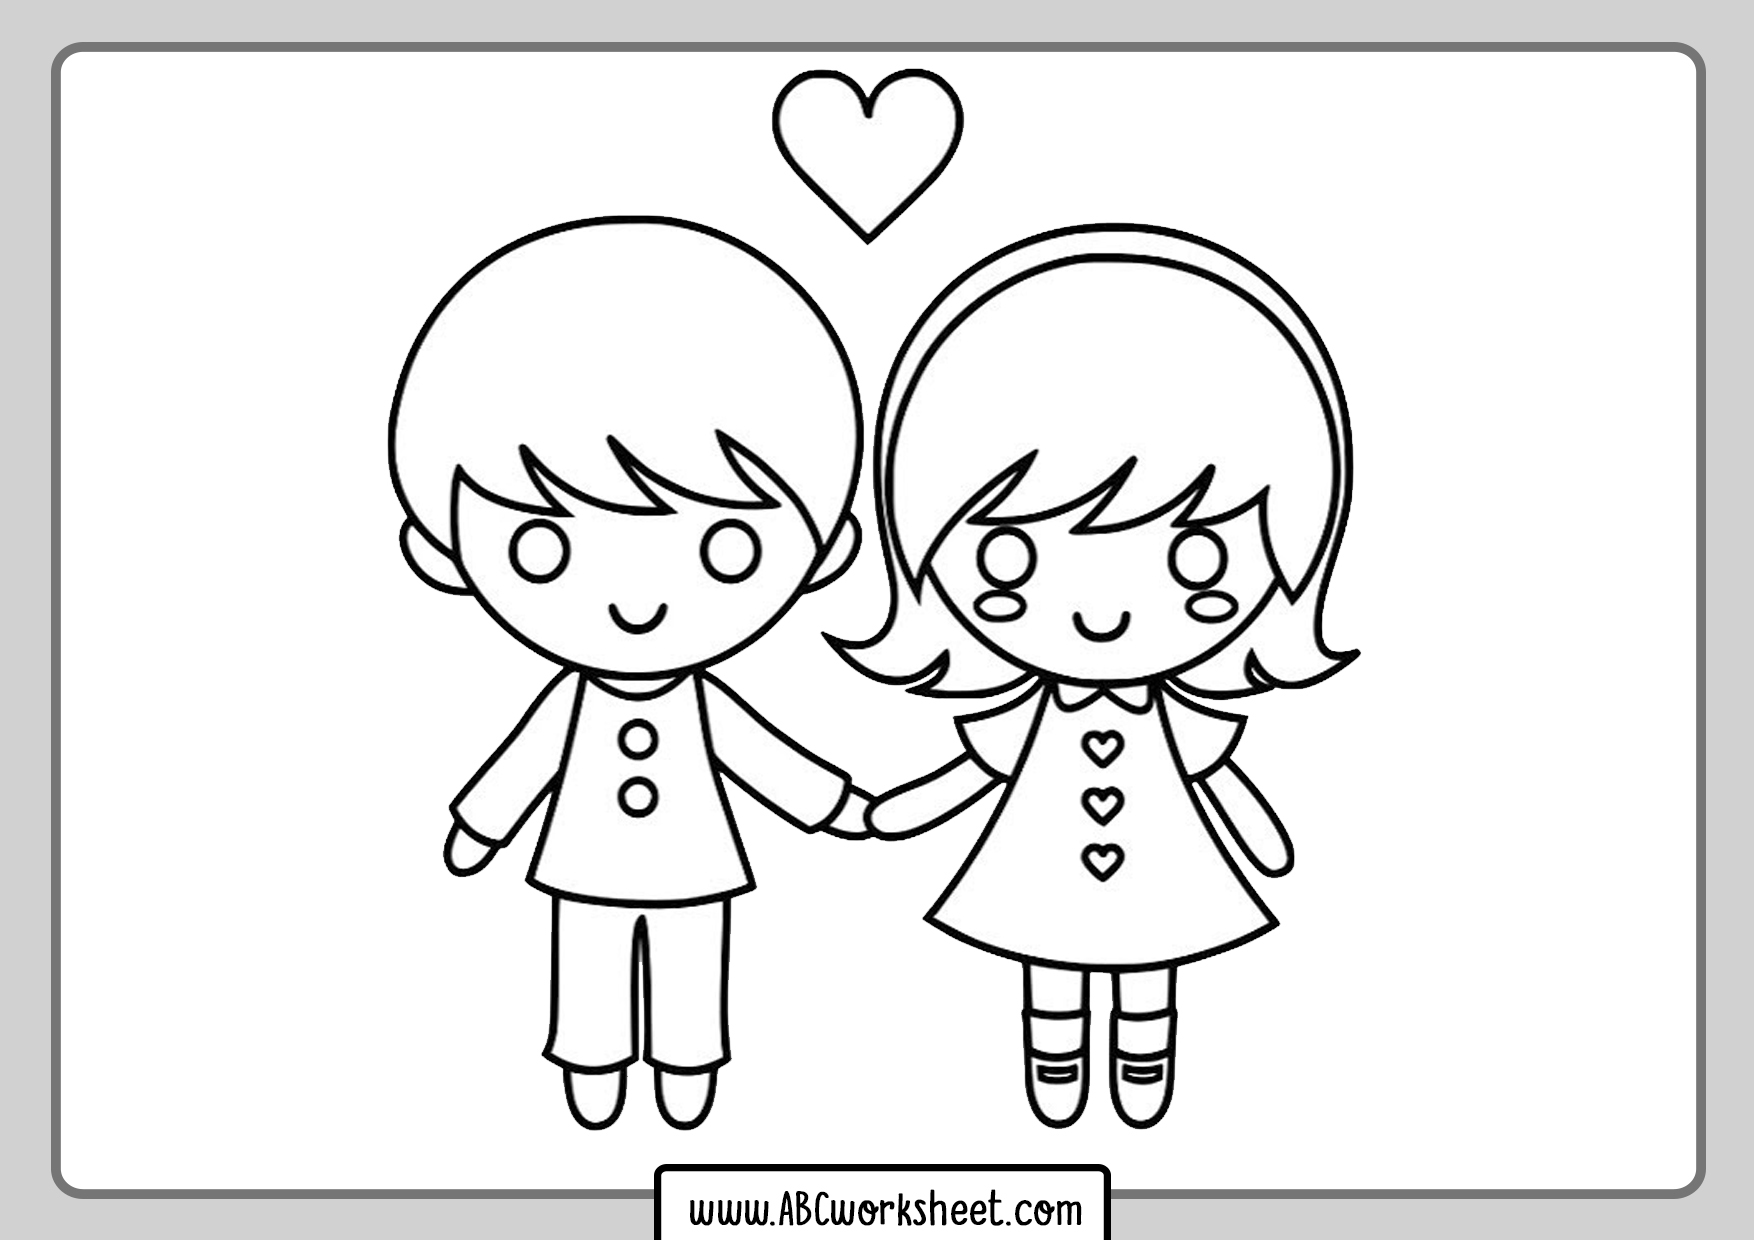 In Love Kids Coloring Page